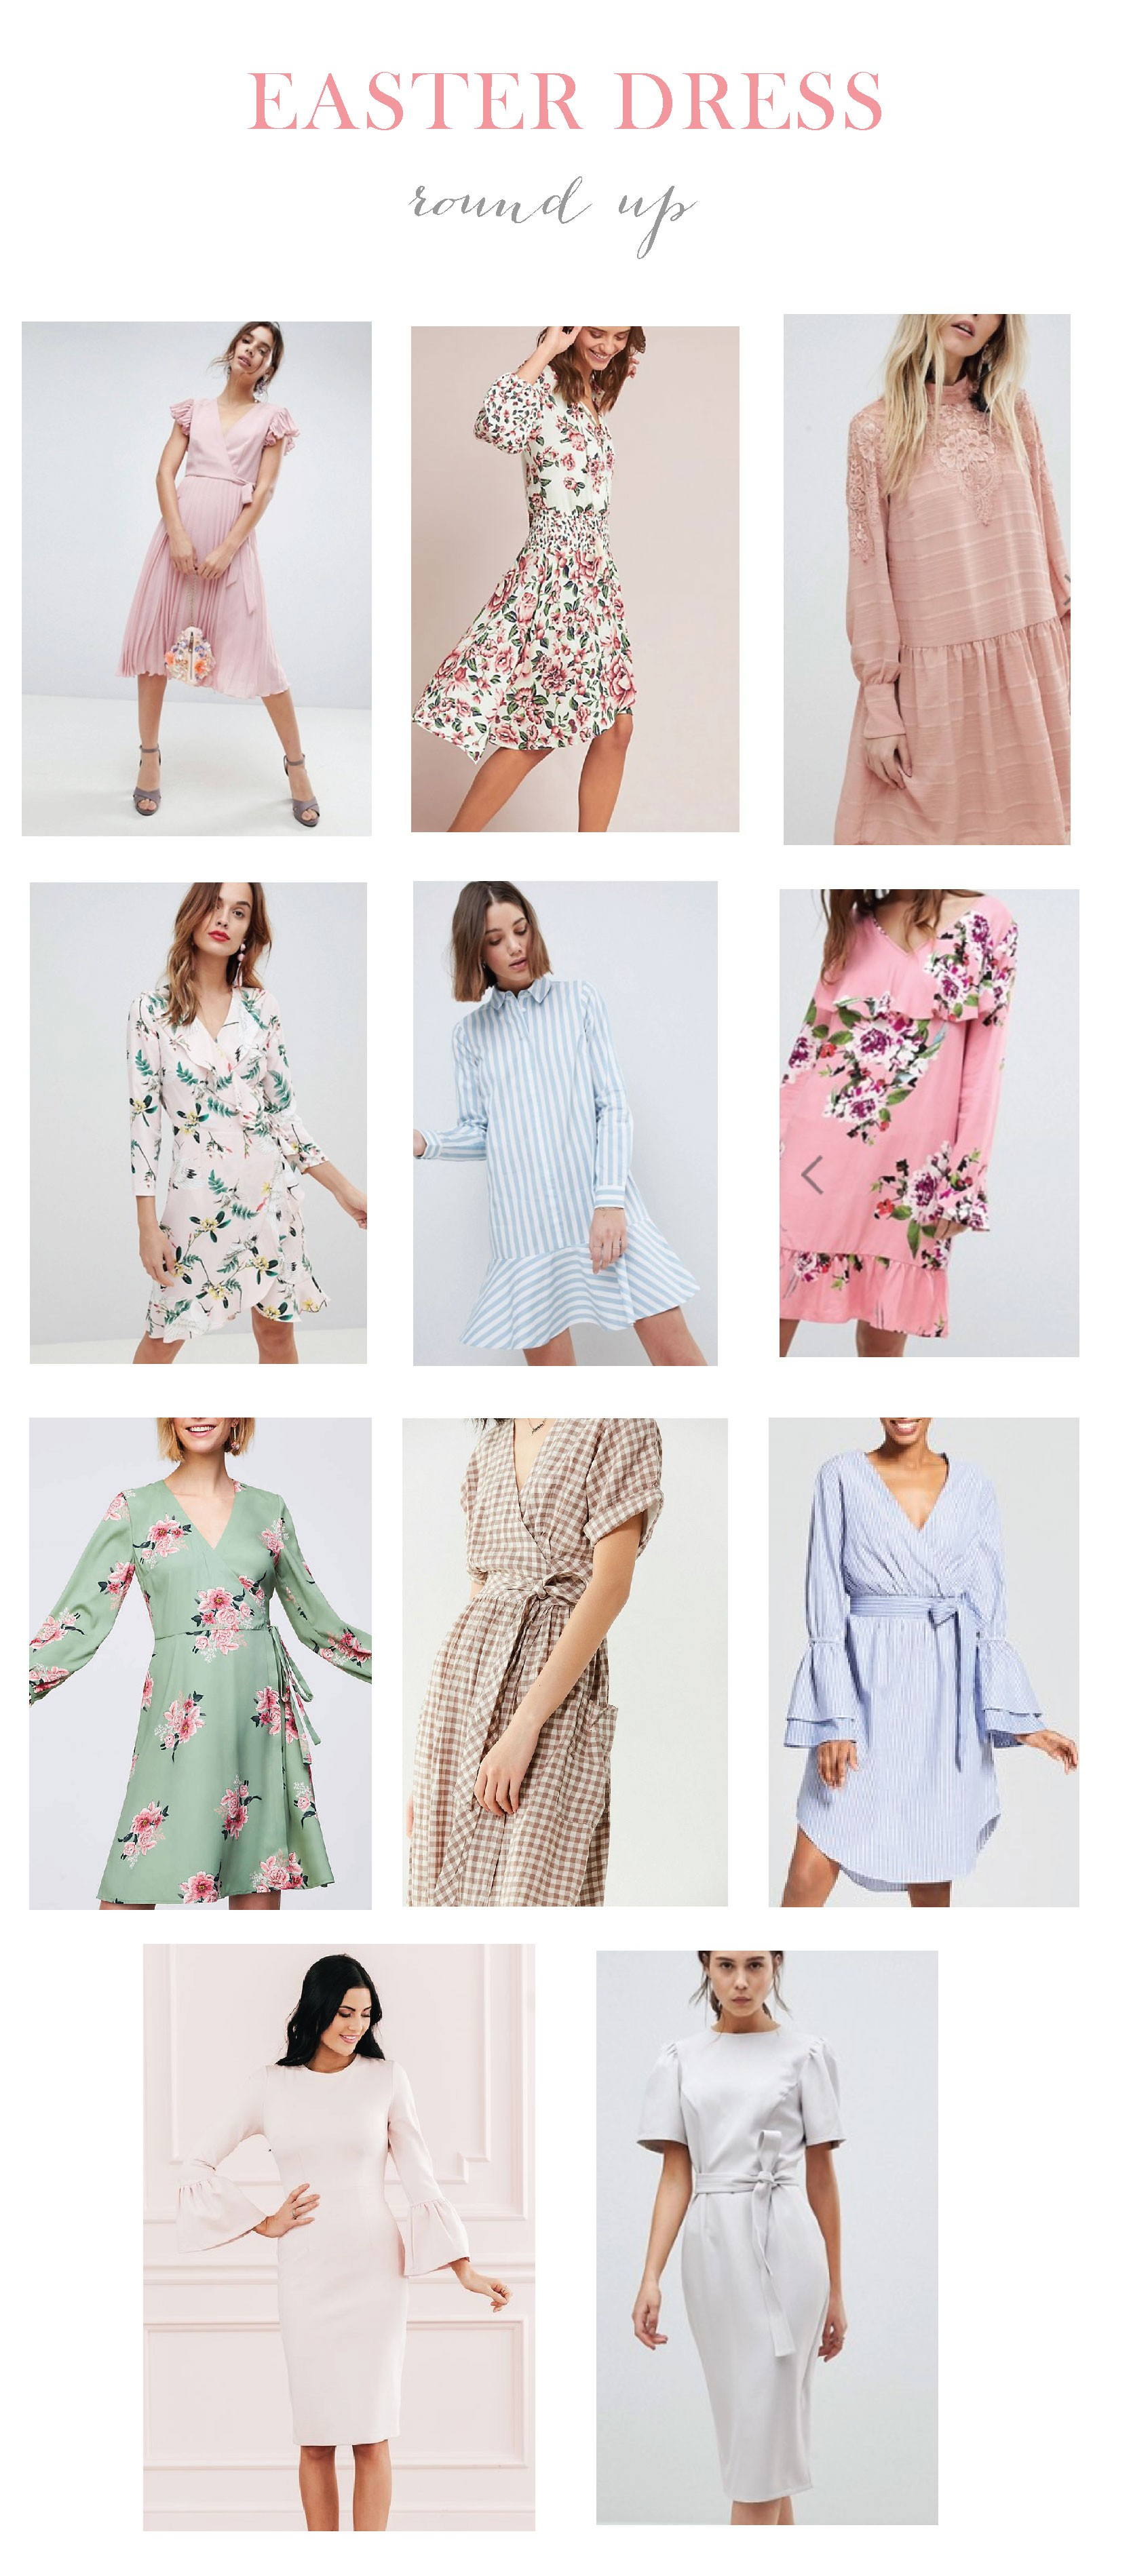 540a4705b44f Click any of the cute Easter dresses below to shop! Happy Monday!